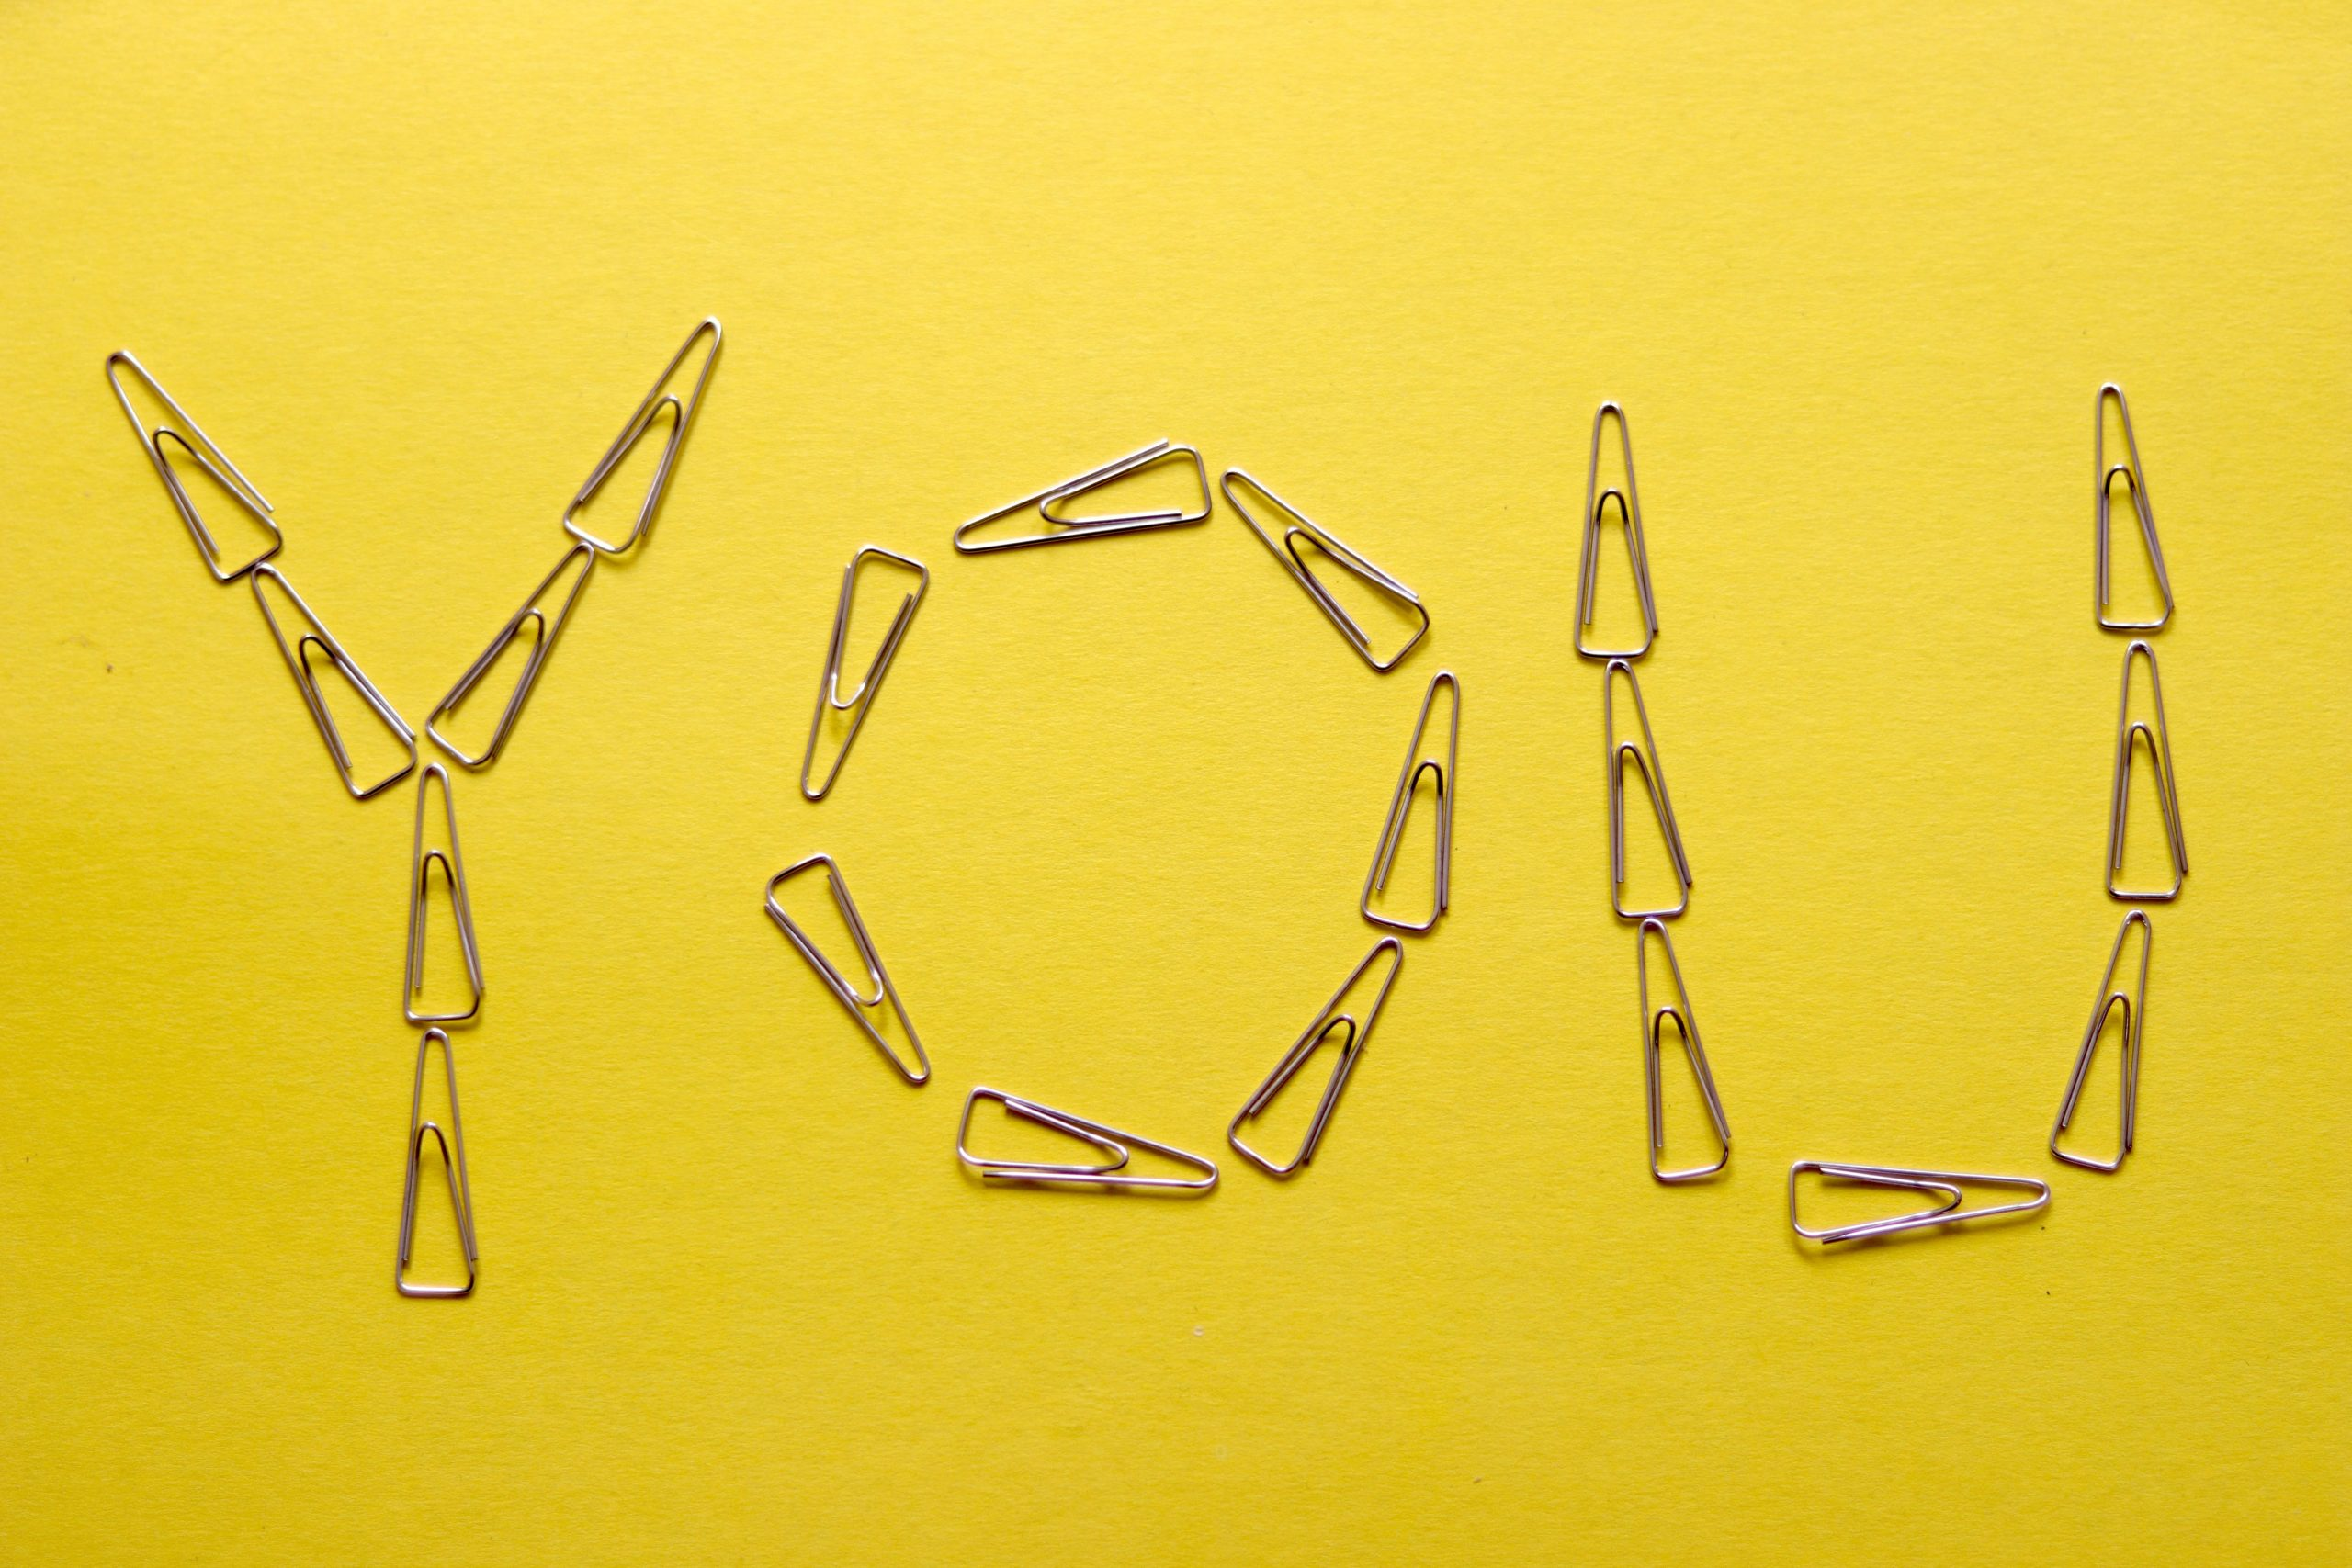 Paperclips spelling out the word YOU